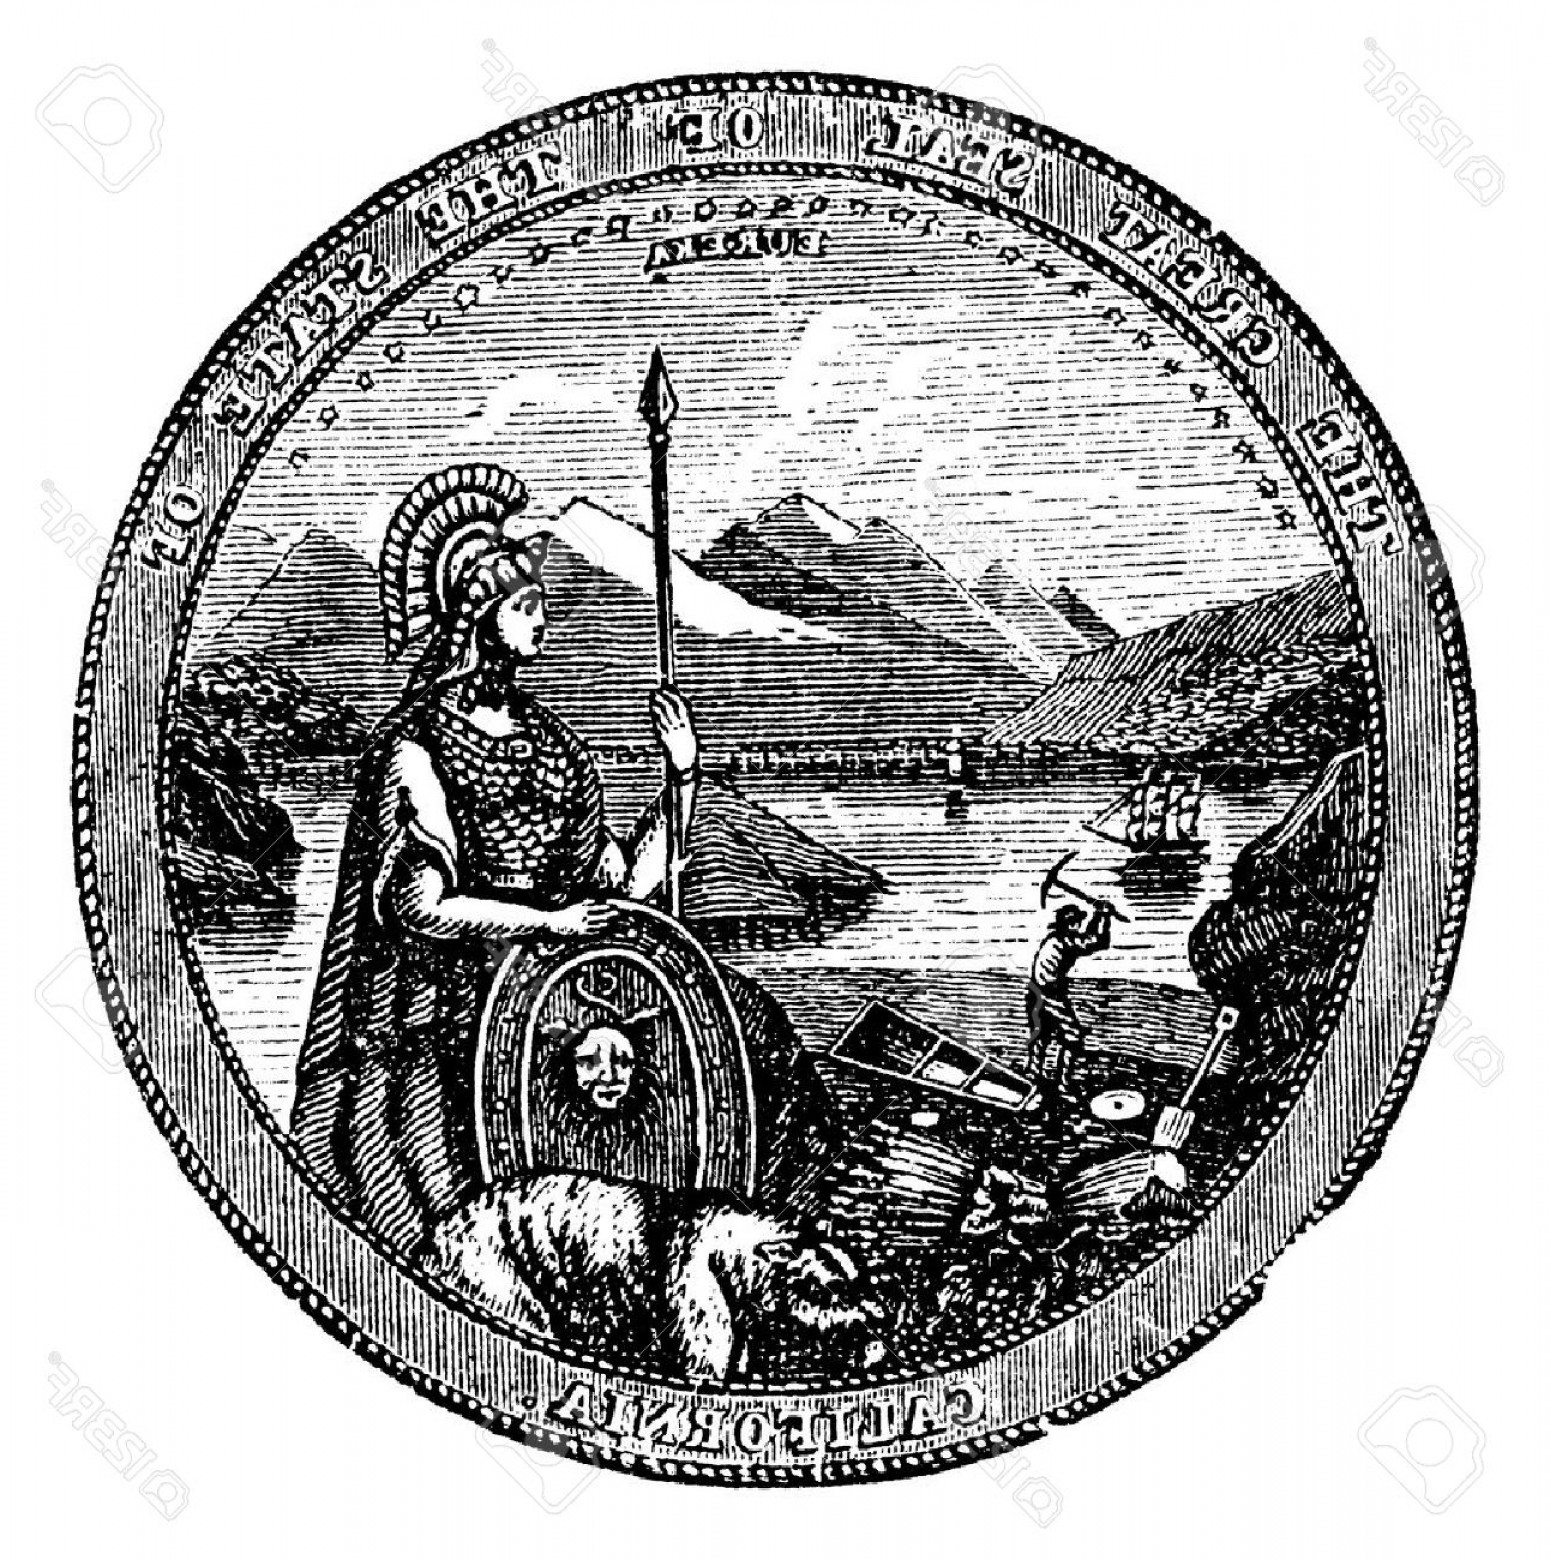 California Seal Vector EPS: Photostock Vector Great Seal Of The State Of California Vintage Engraving Vintage Engraved Illustration Of The Seal Of